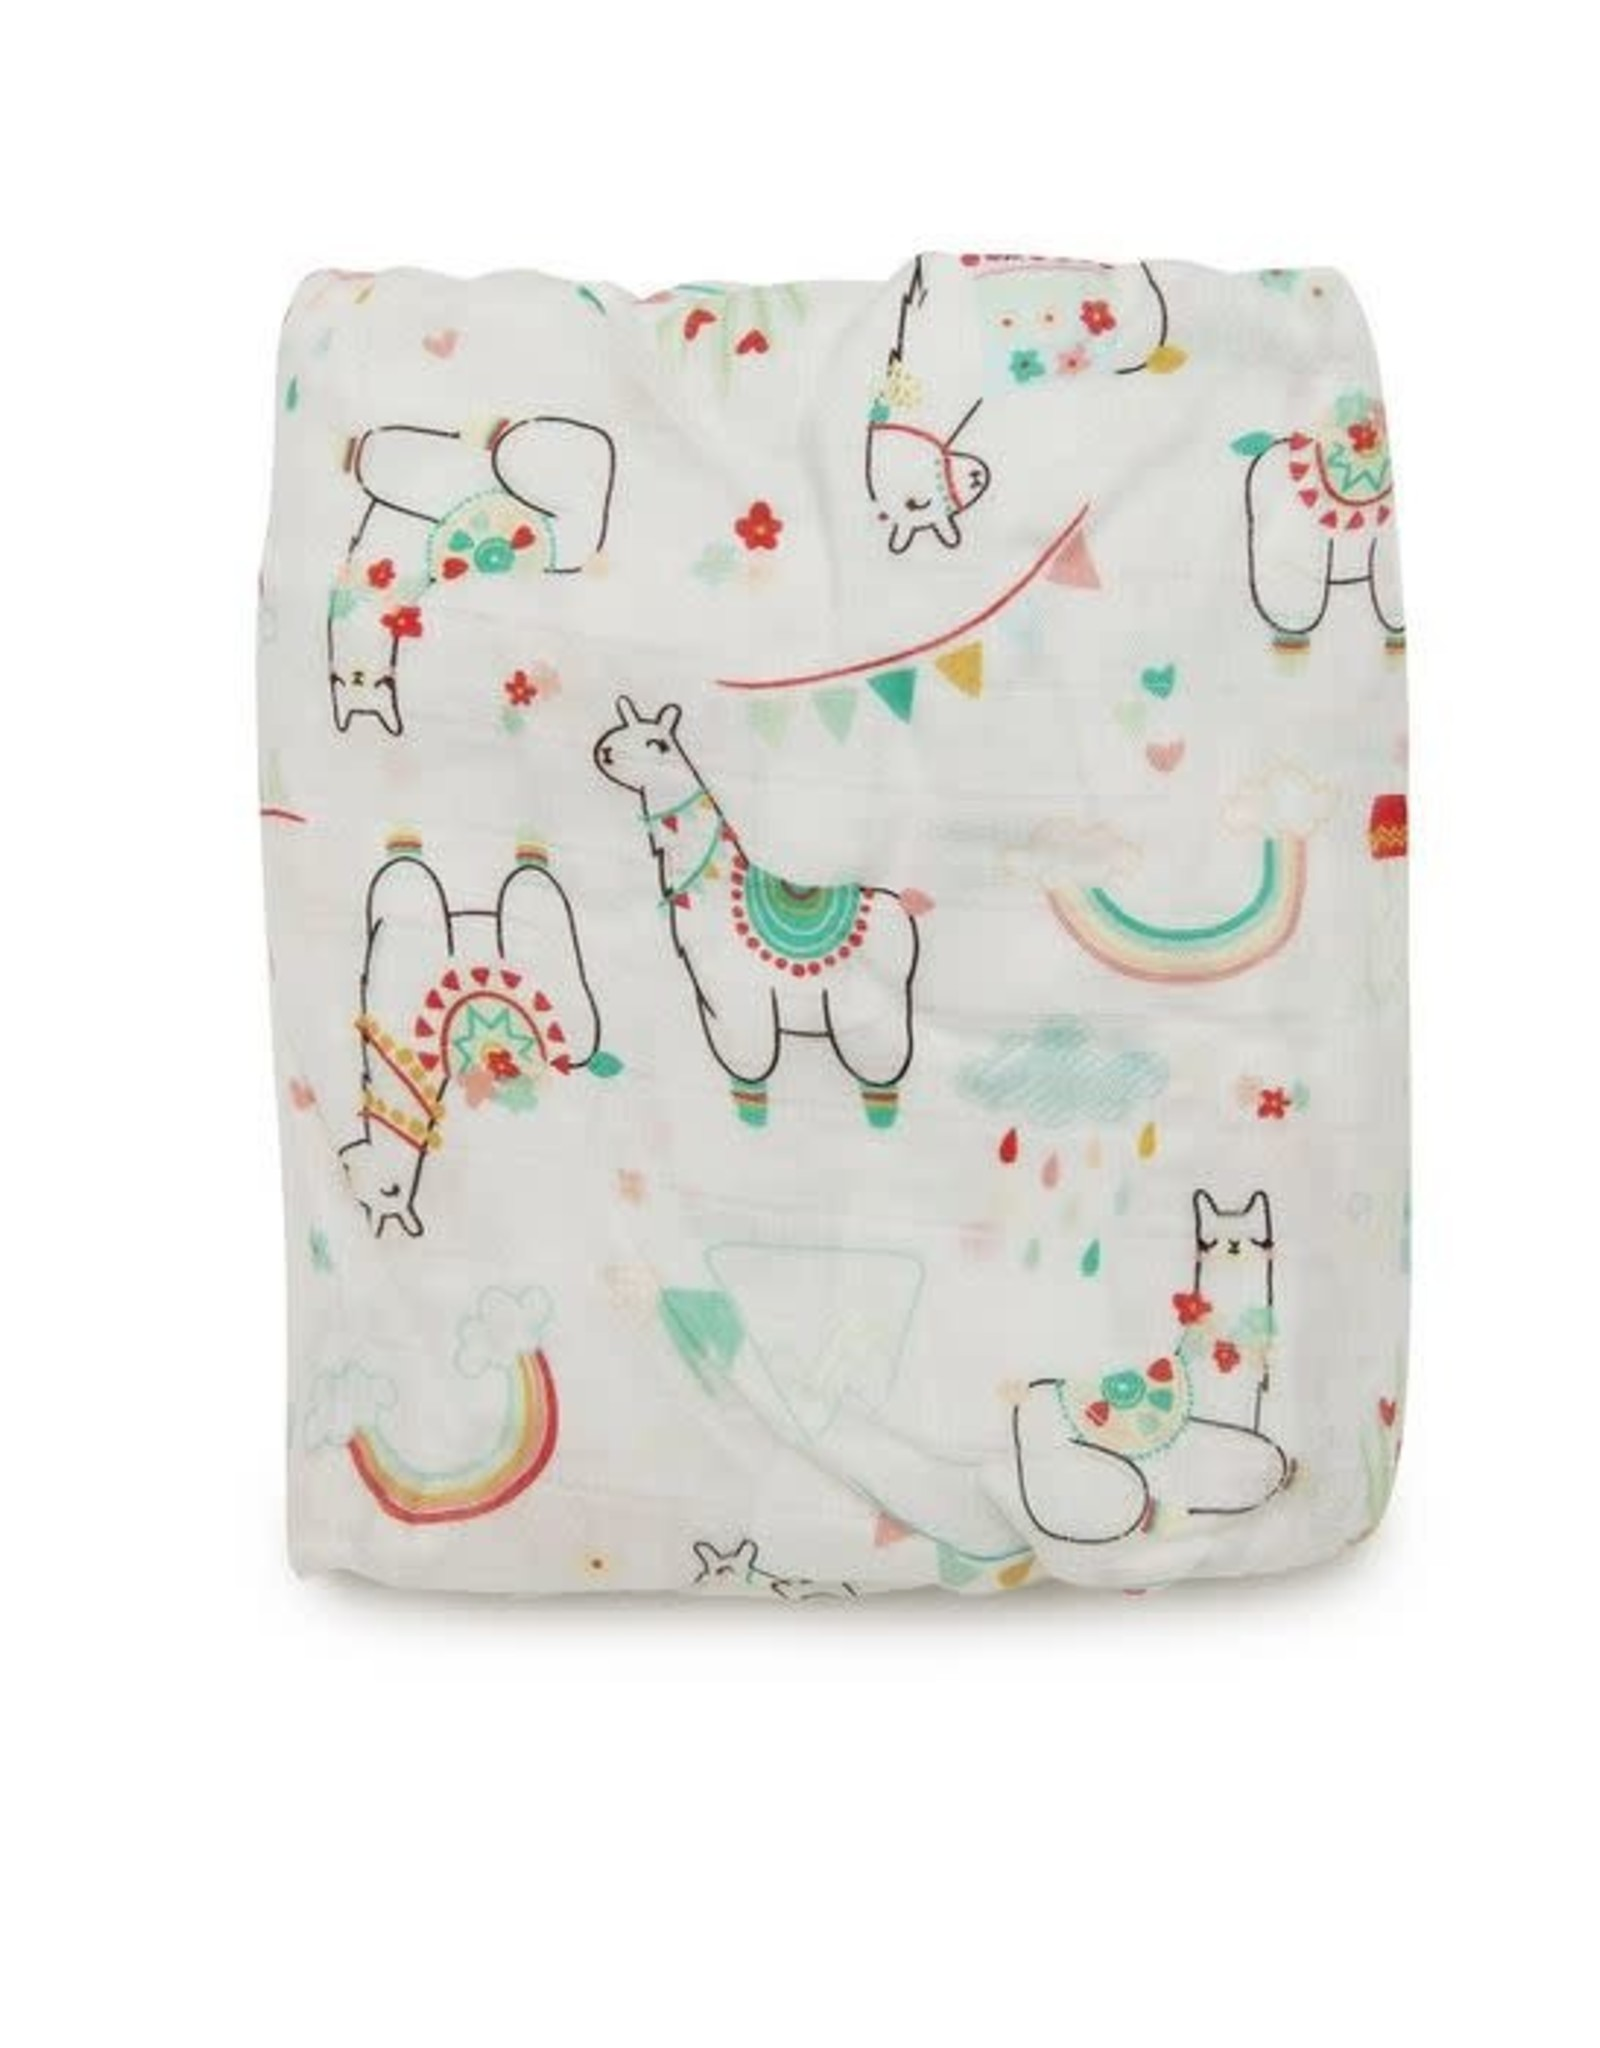 Loulou Lollipop Fitted Crib Sheet - Llama